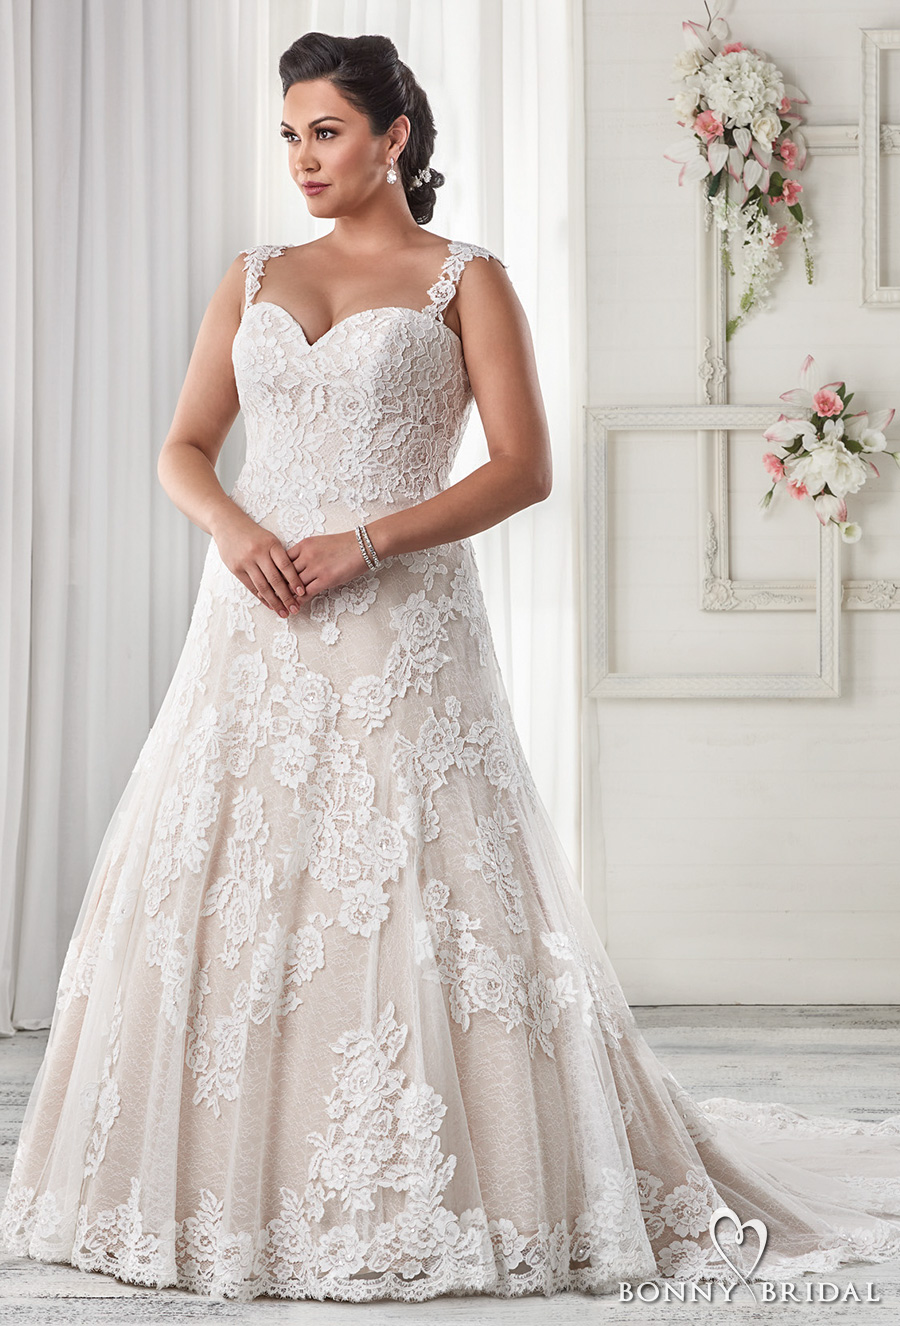 Bonny bridal wedding dresses unforgettable styles for for Plus size beaded wedding dresses